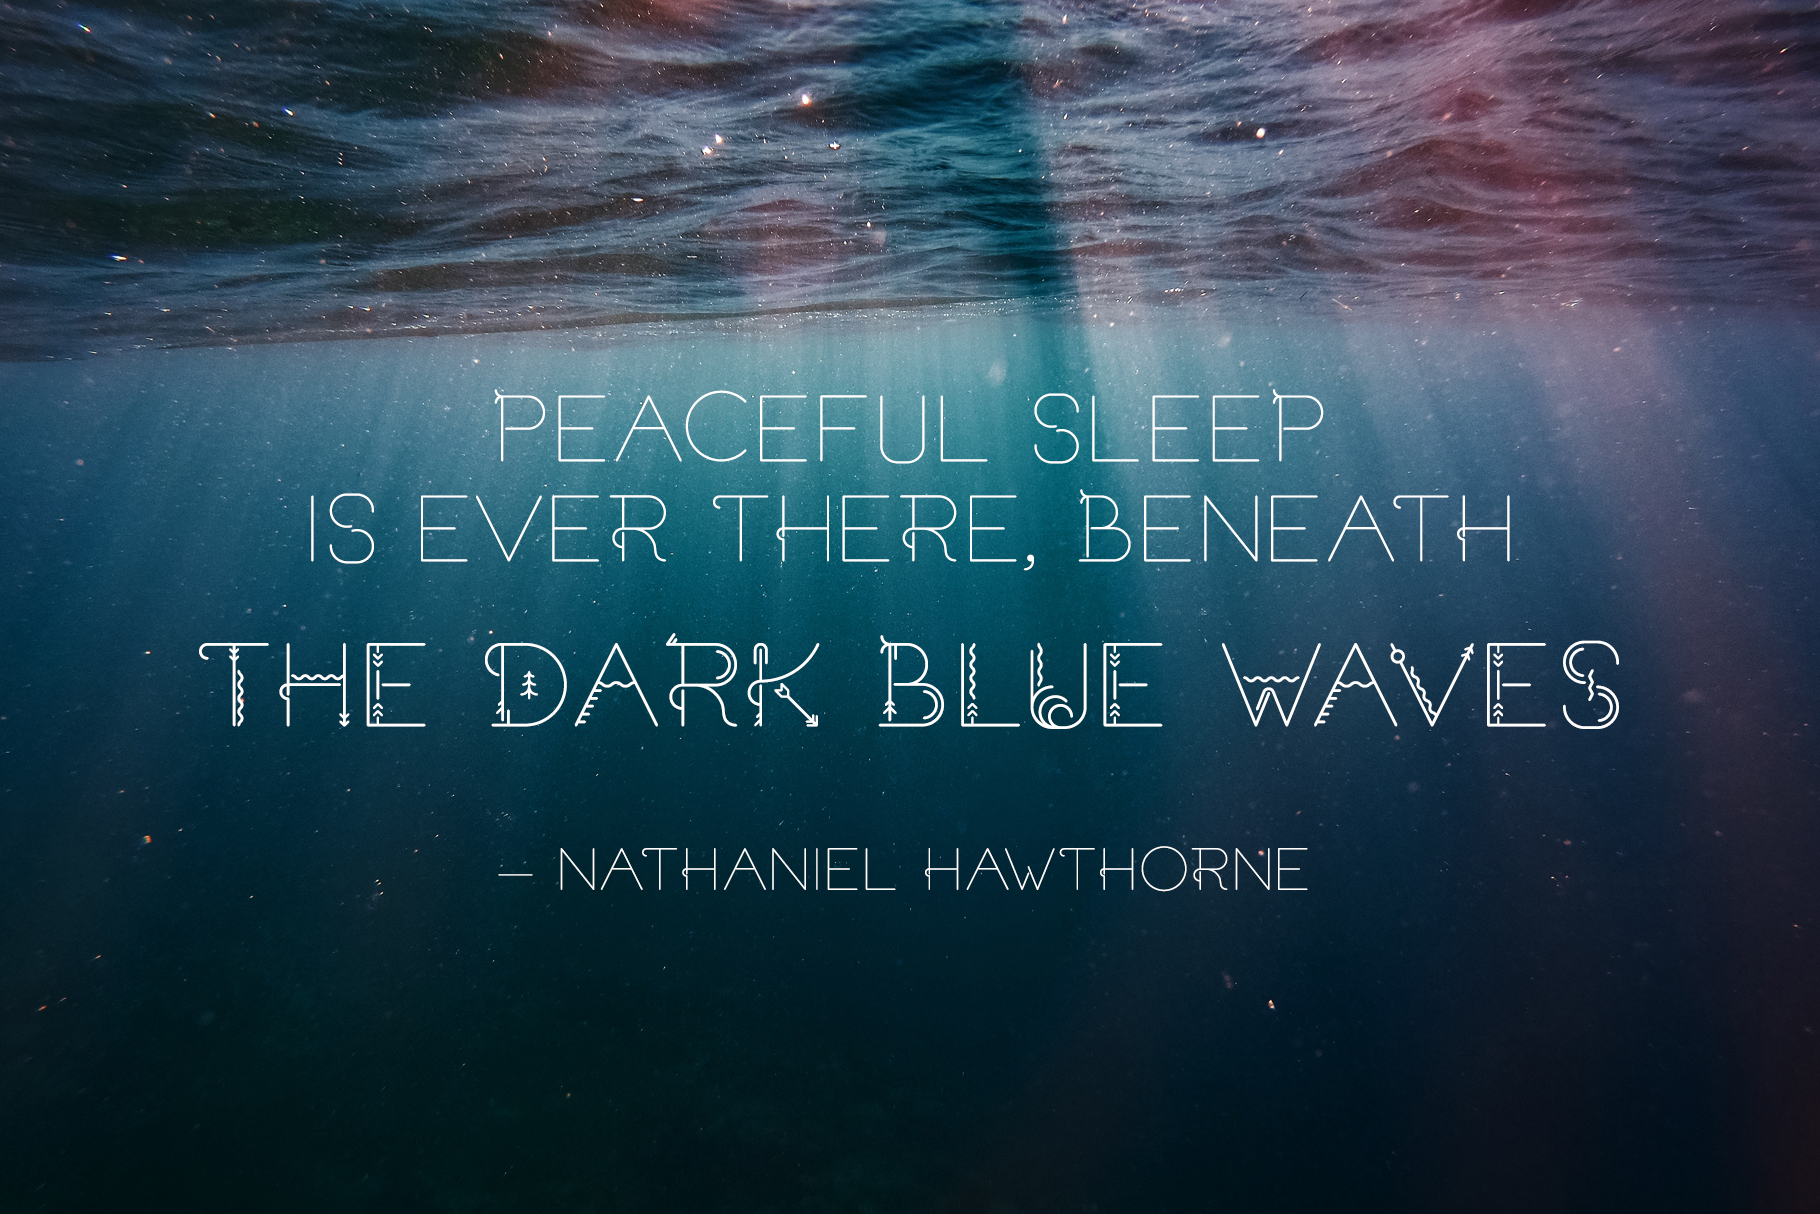 nathaniel hawthorne – preview image